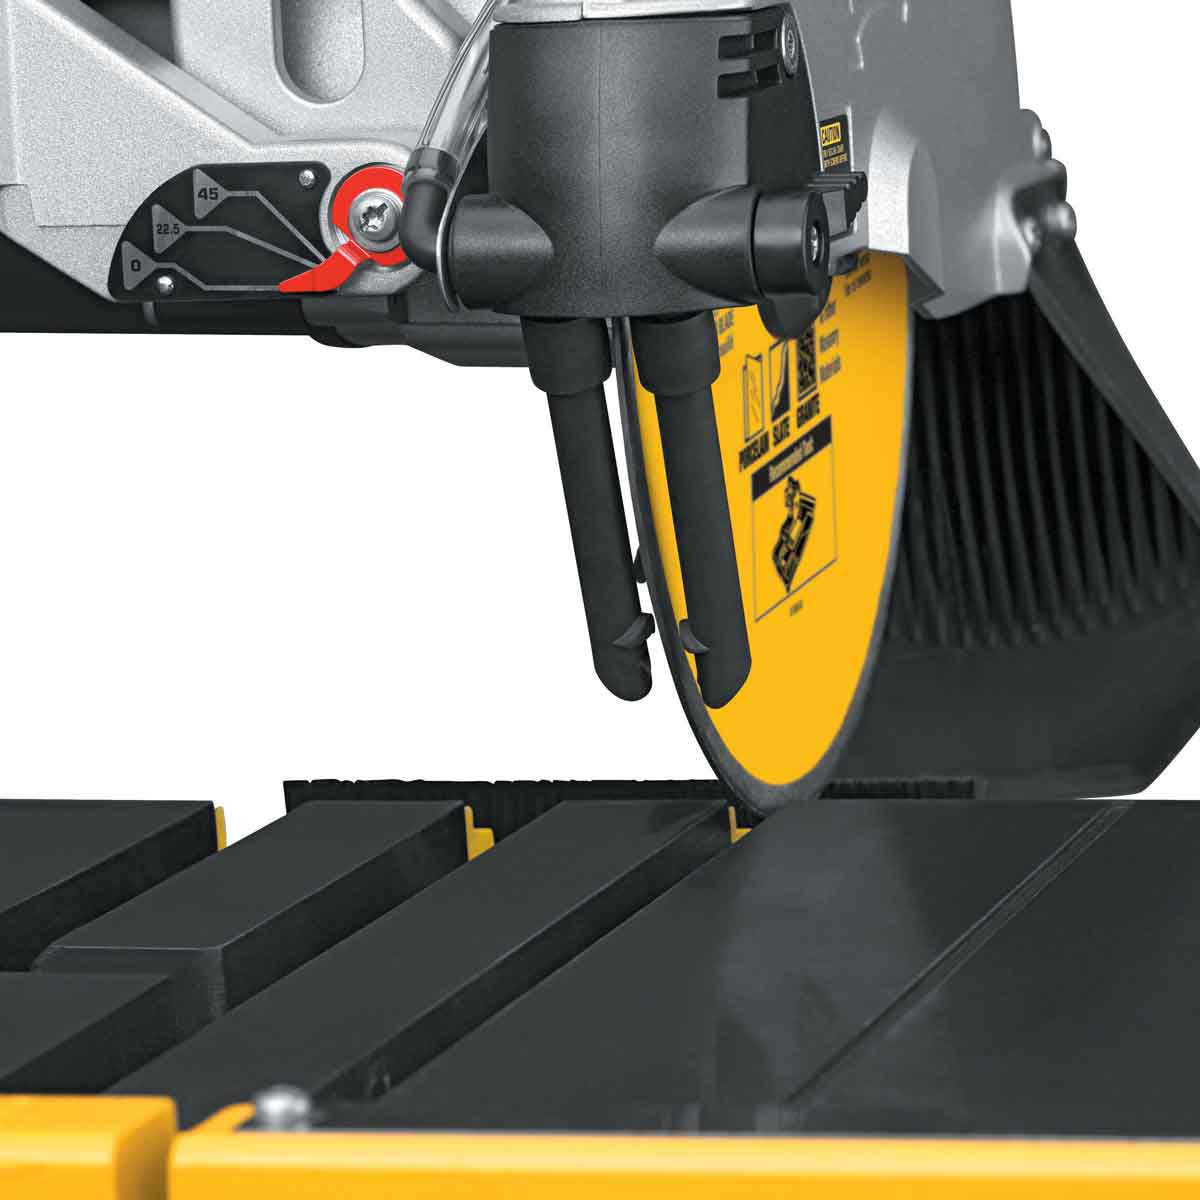 Dewalt D24000 cutting table